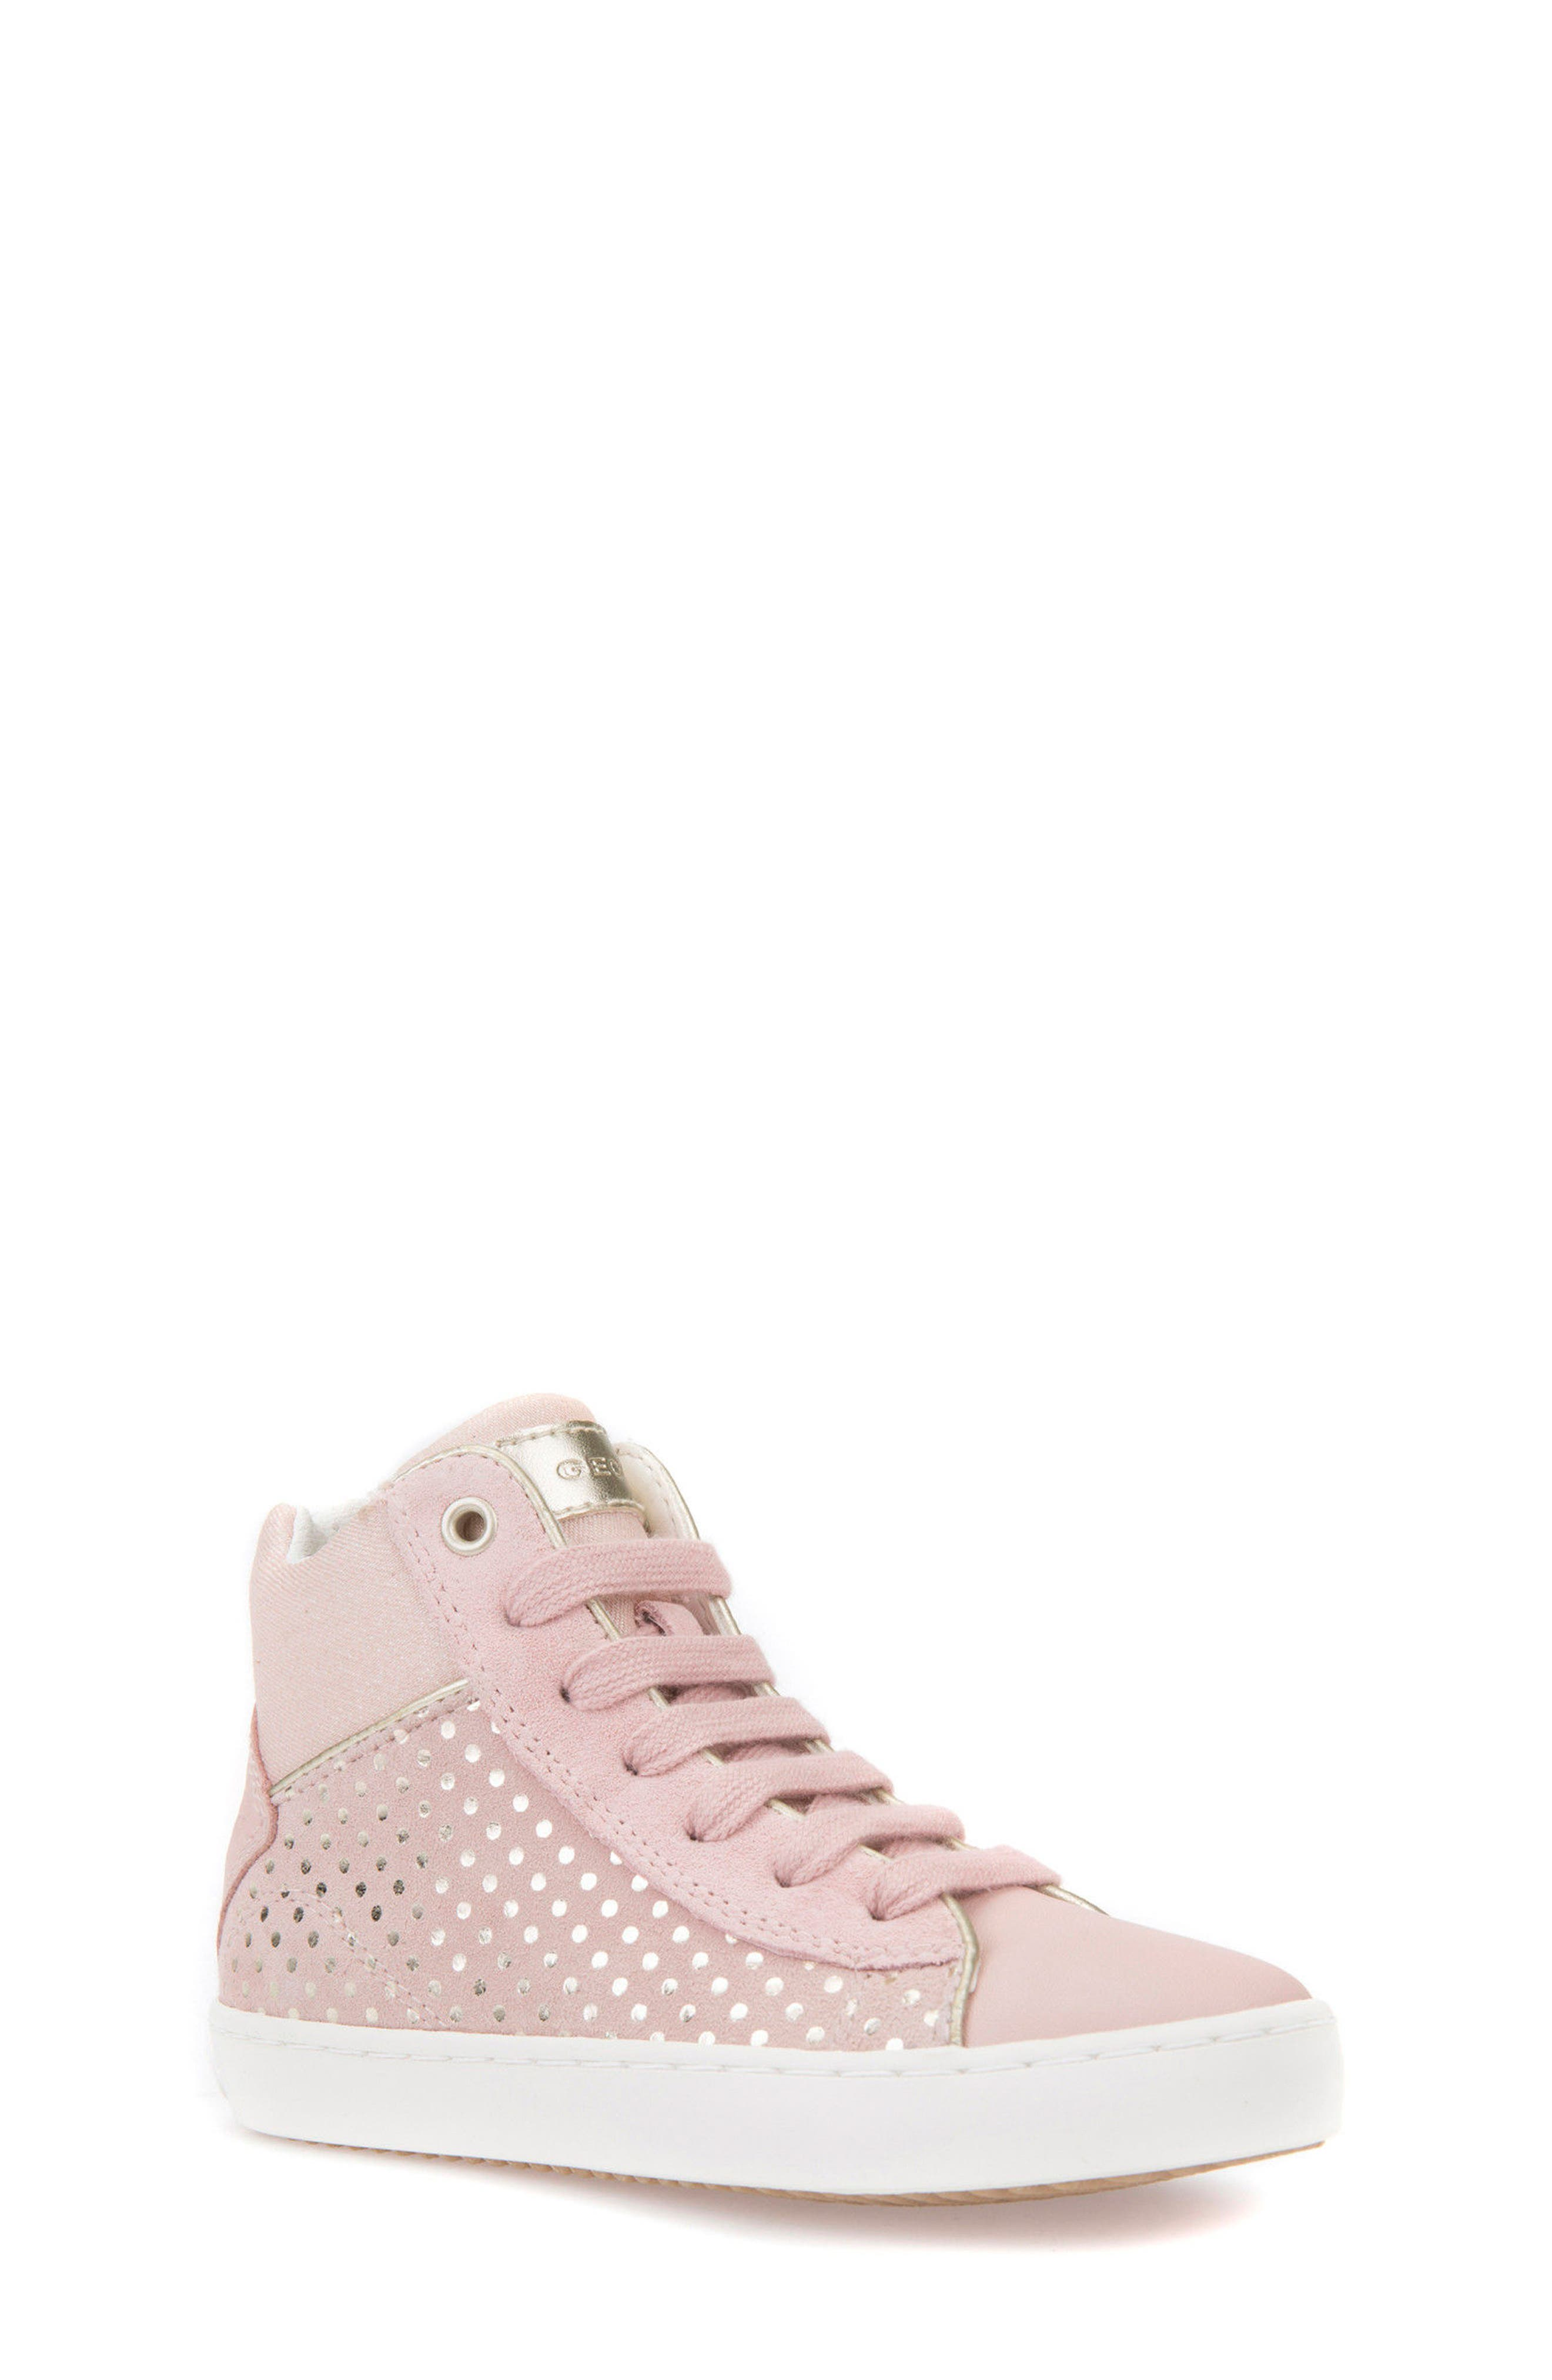 Kilwi High Top Zip Sneaker,                             Main thumbnail 1, color,                             ROSE